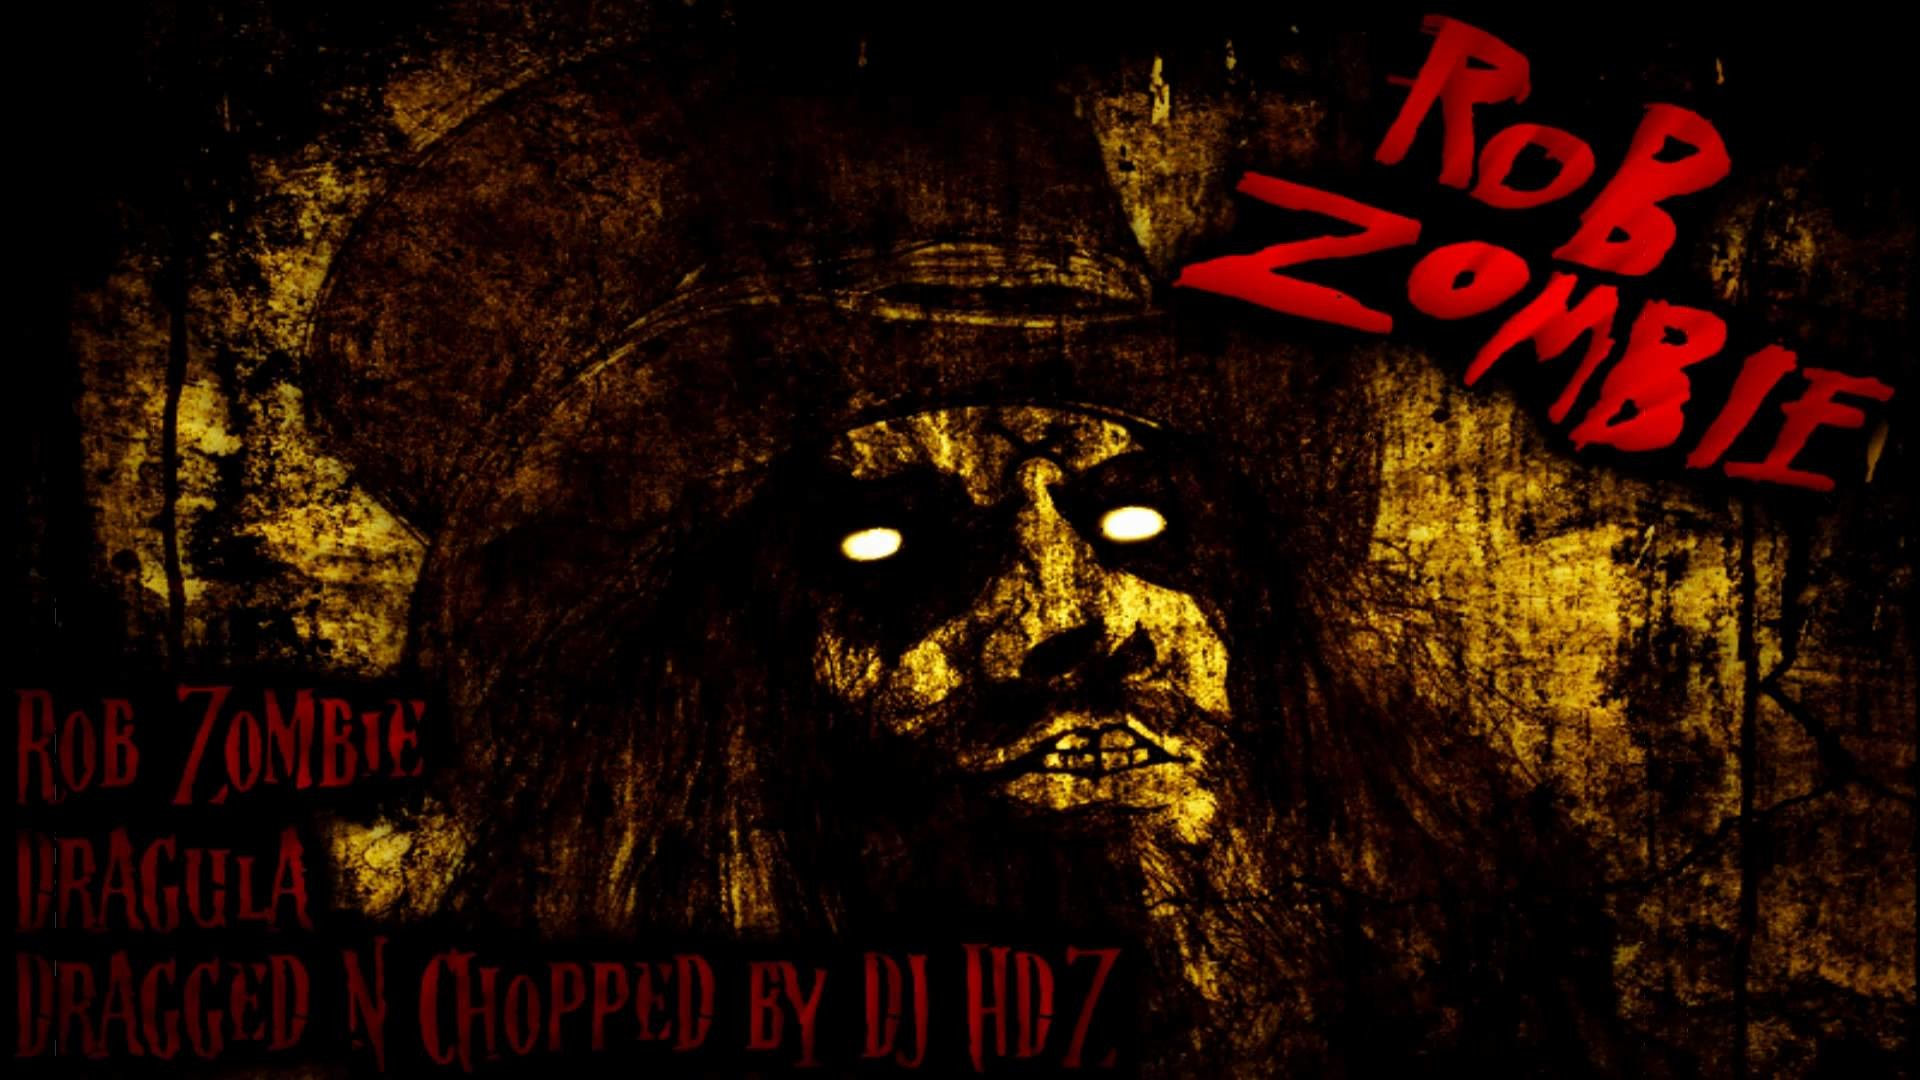 1920x1080 ... rob zombie wallpaper hd ...